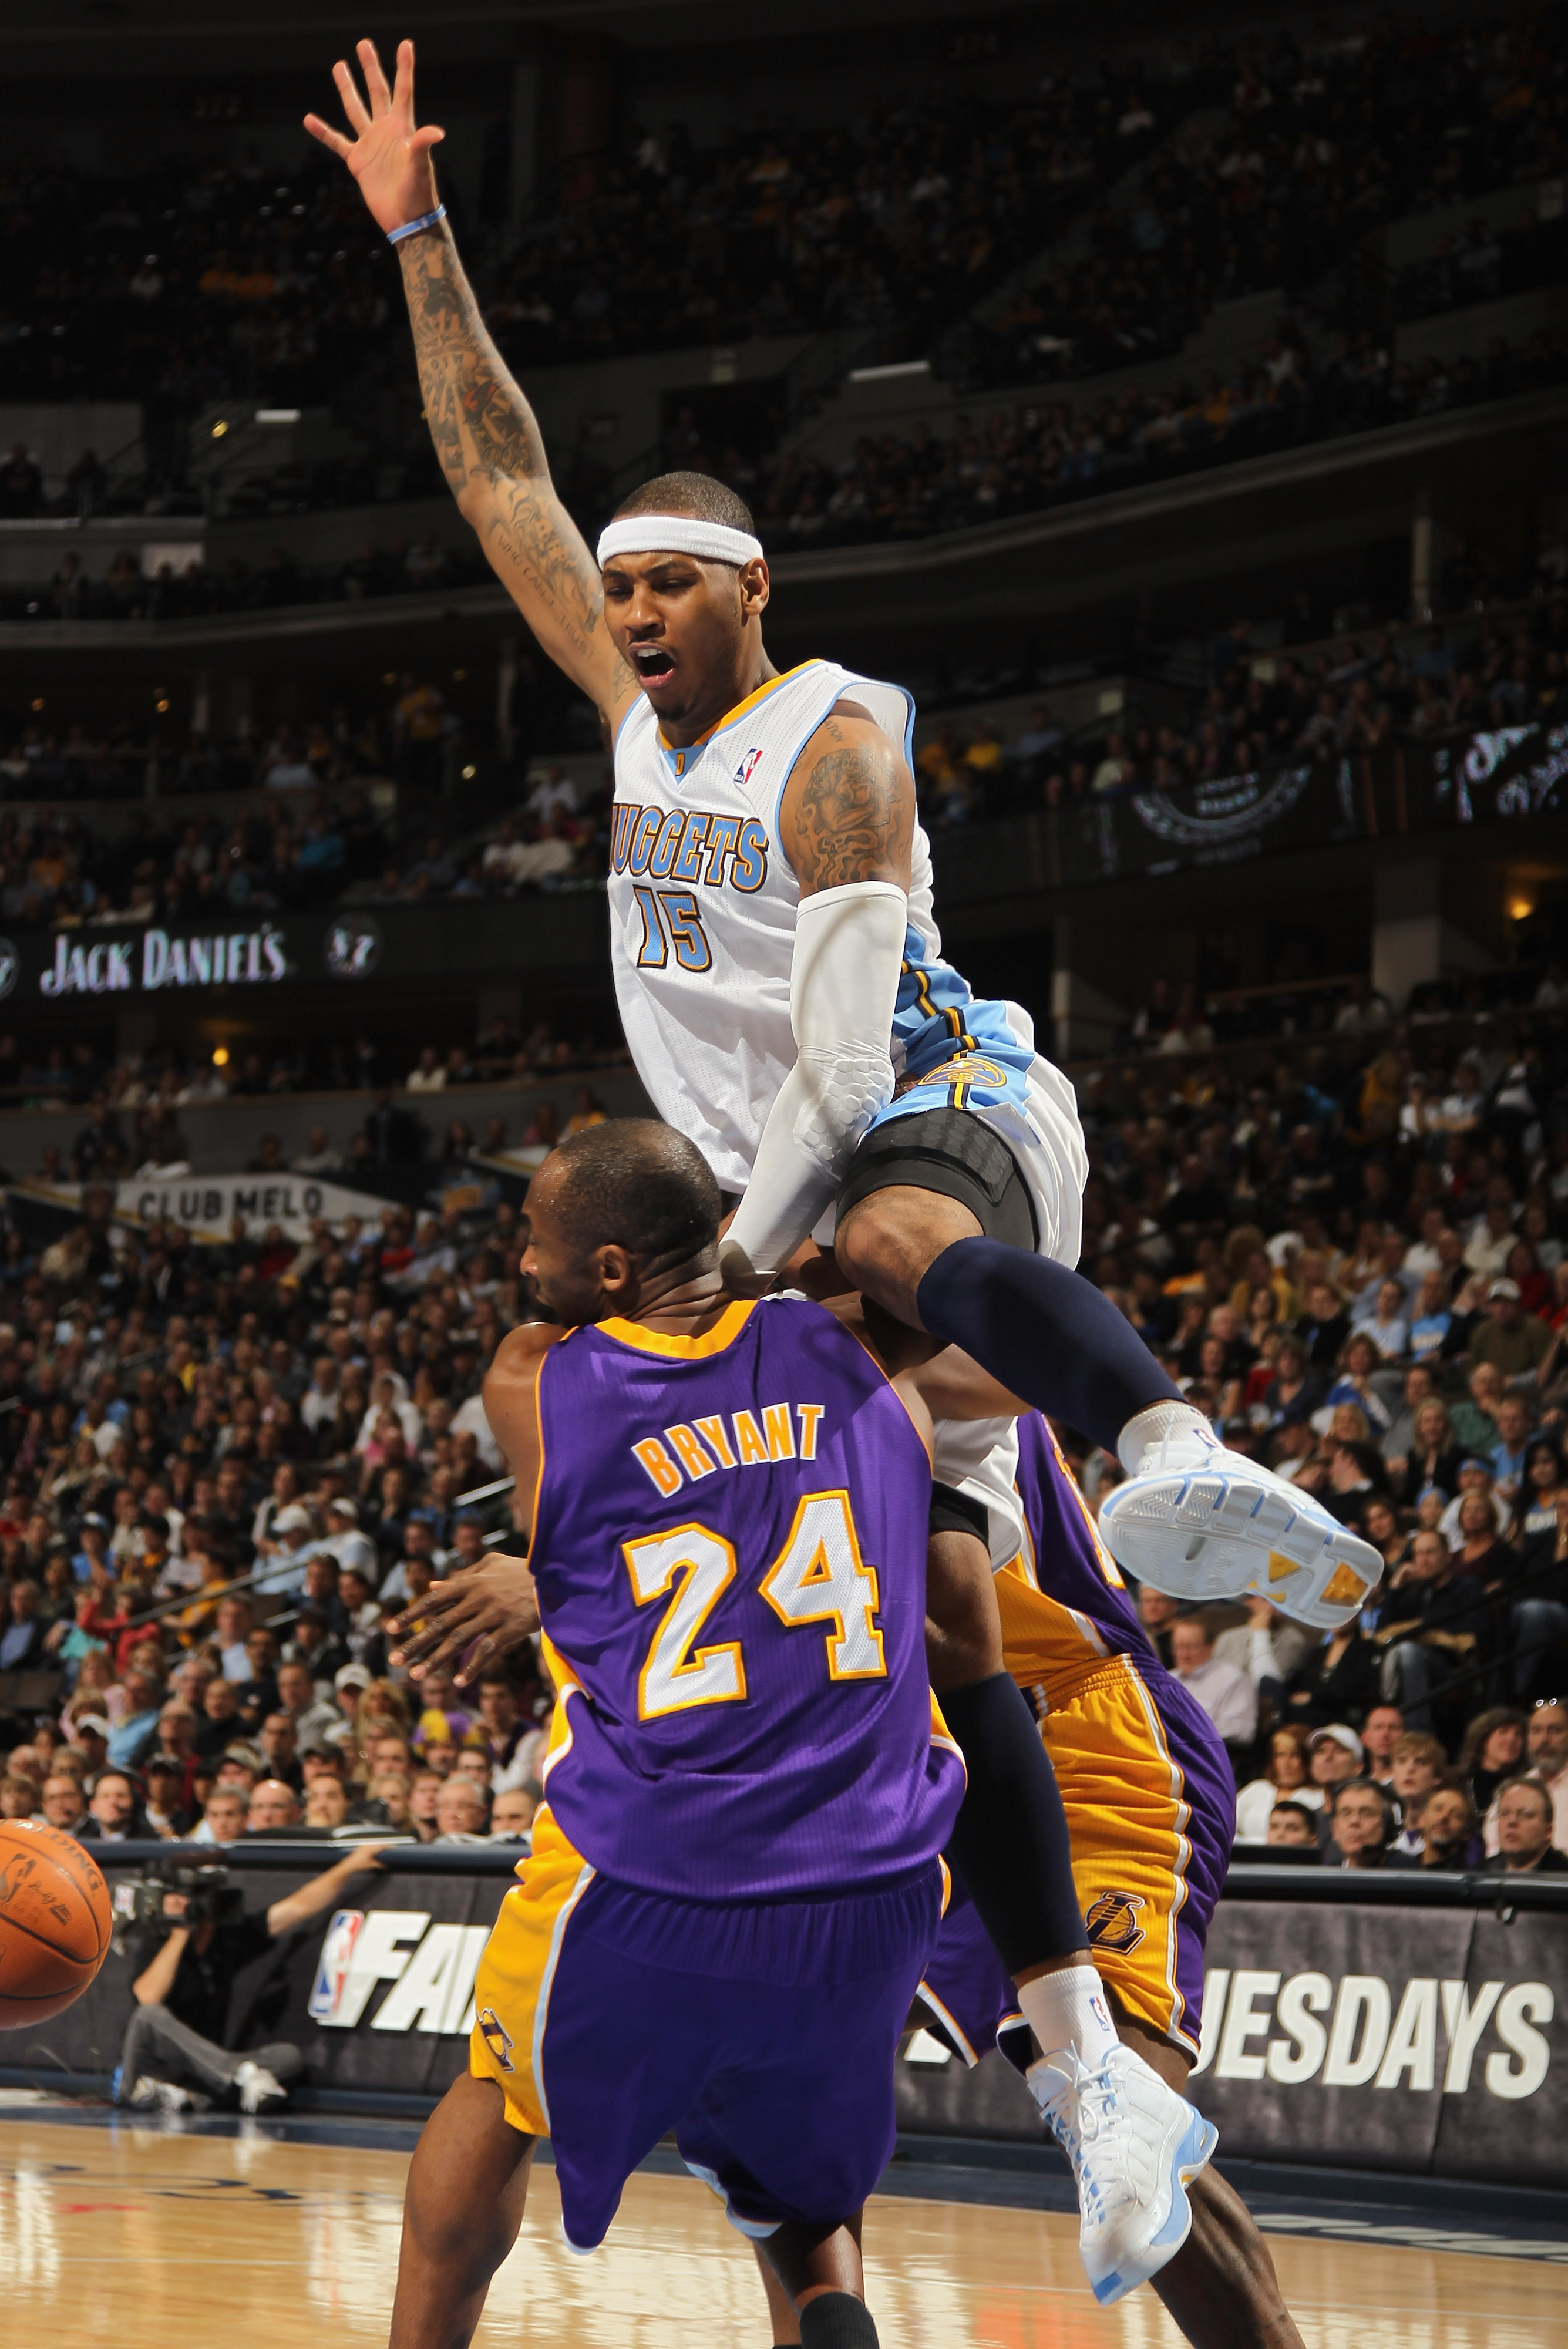 DENVER, CO - JANUARY 21:  Carmelo Anthony #15 of the Denver Nuggets collides with Kobe Bryant #24 of the Los Angeles Lakers at the Pepsi Center on January 21, 2011 in Denver, Colorado. The Lakers defeated the Nuggets 107-97. NOTE TO USER: User expressly a